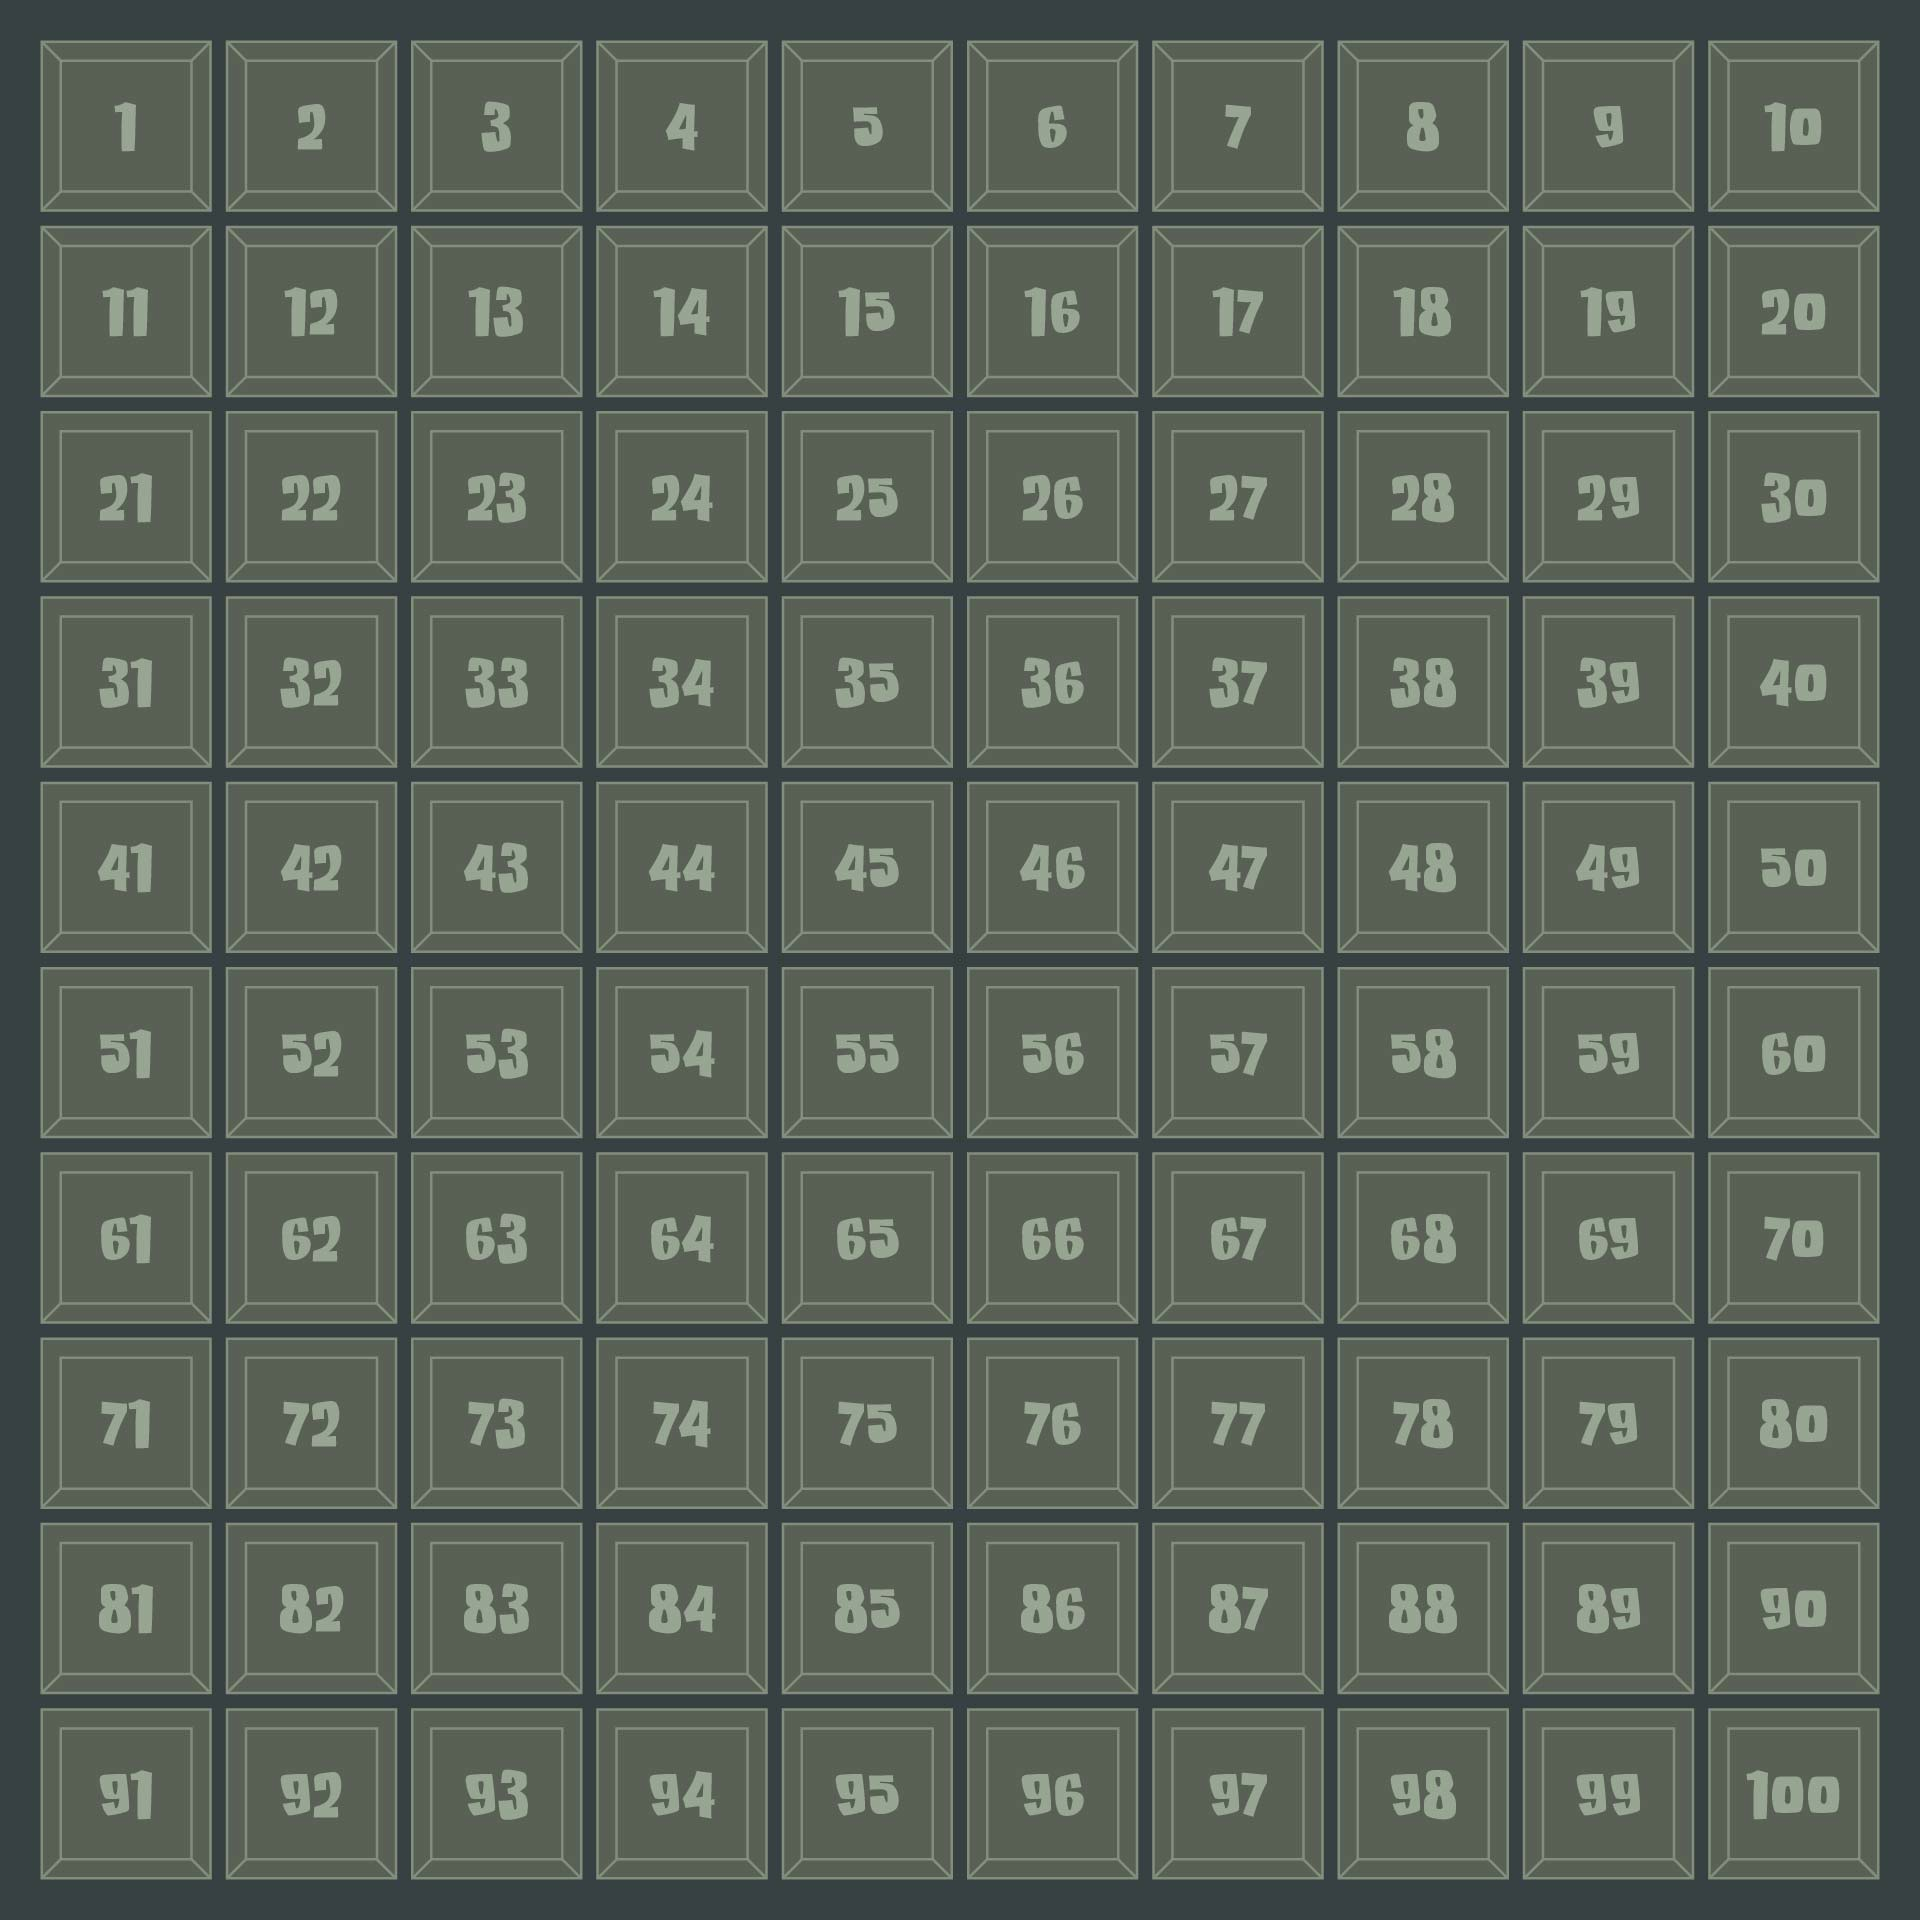 10 X 10 Grid with Numbers 1 100